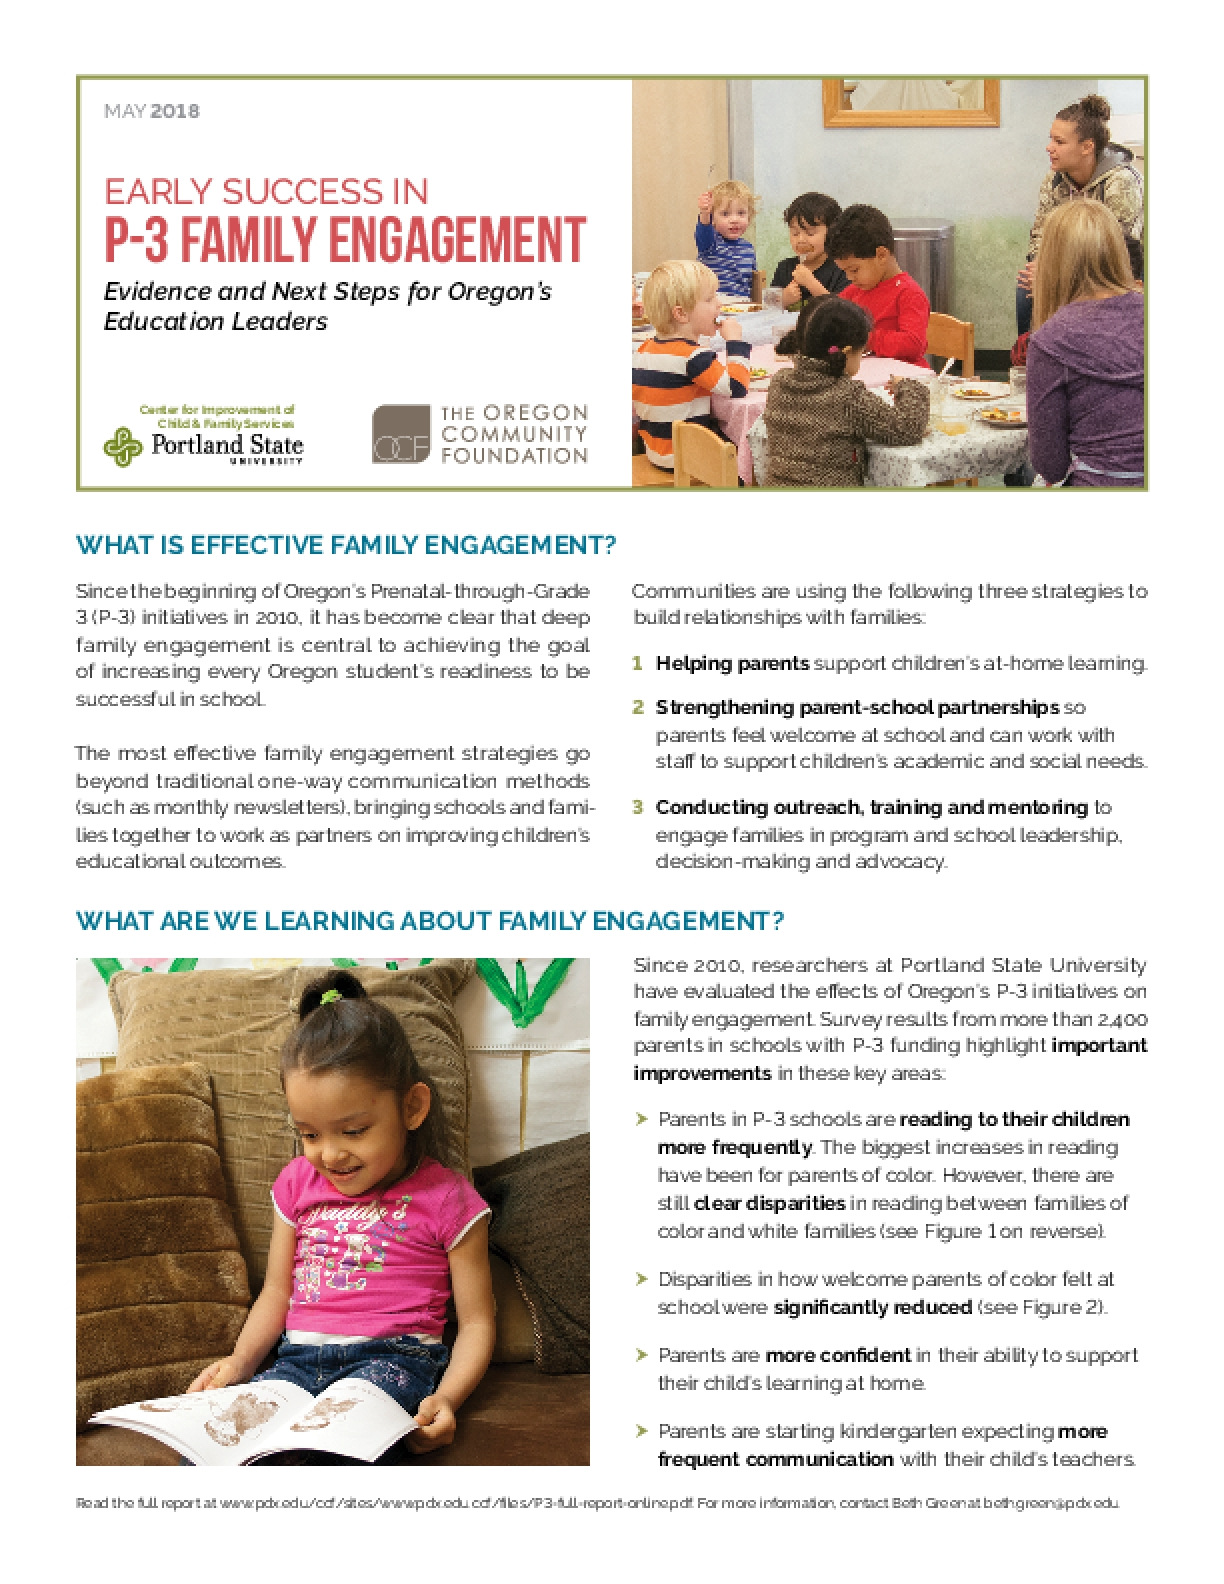 Early Success in P-3 Family Engagement